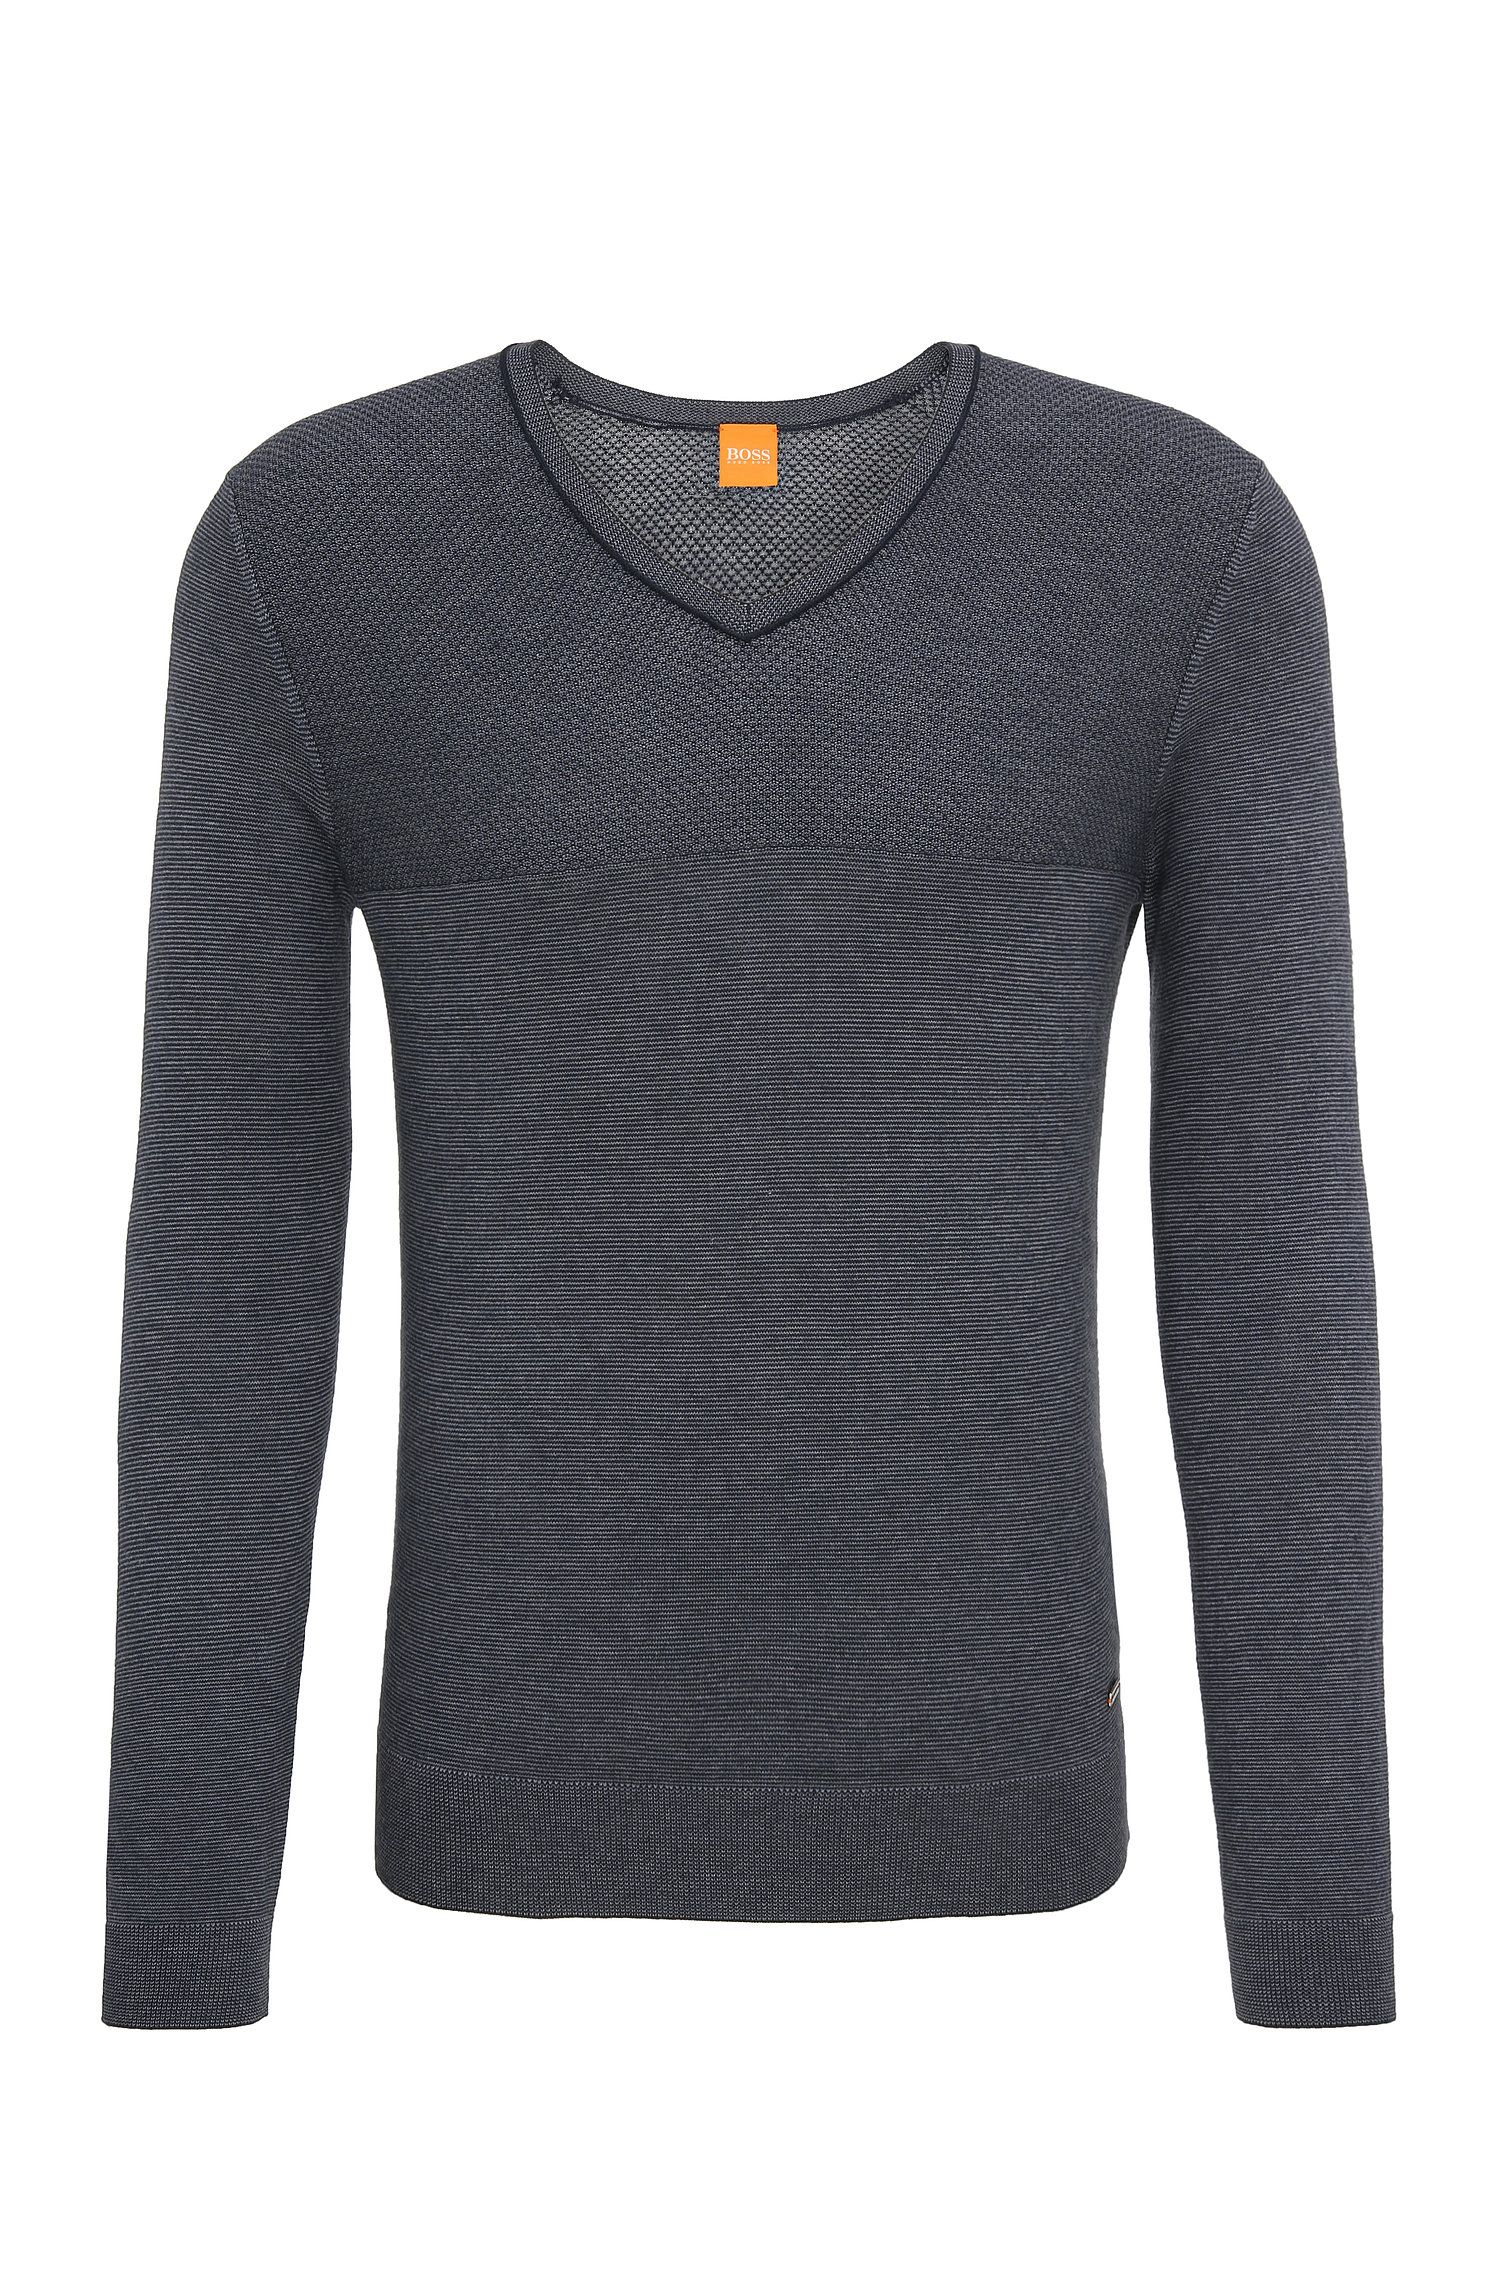 Regular-fit sweater in a cotton and silk blend